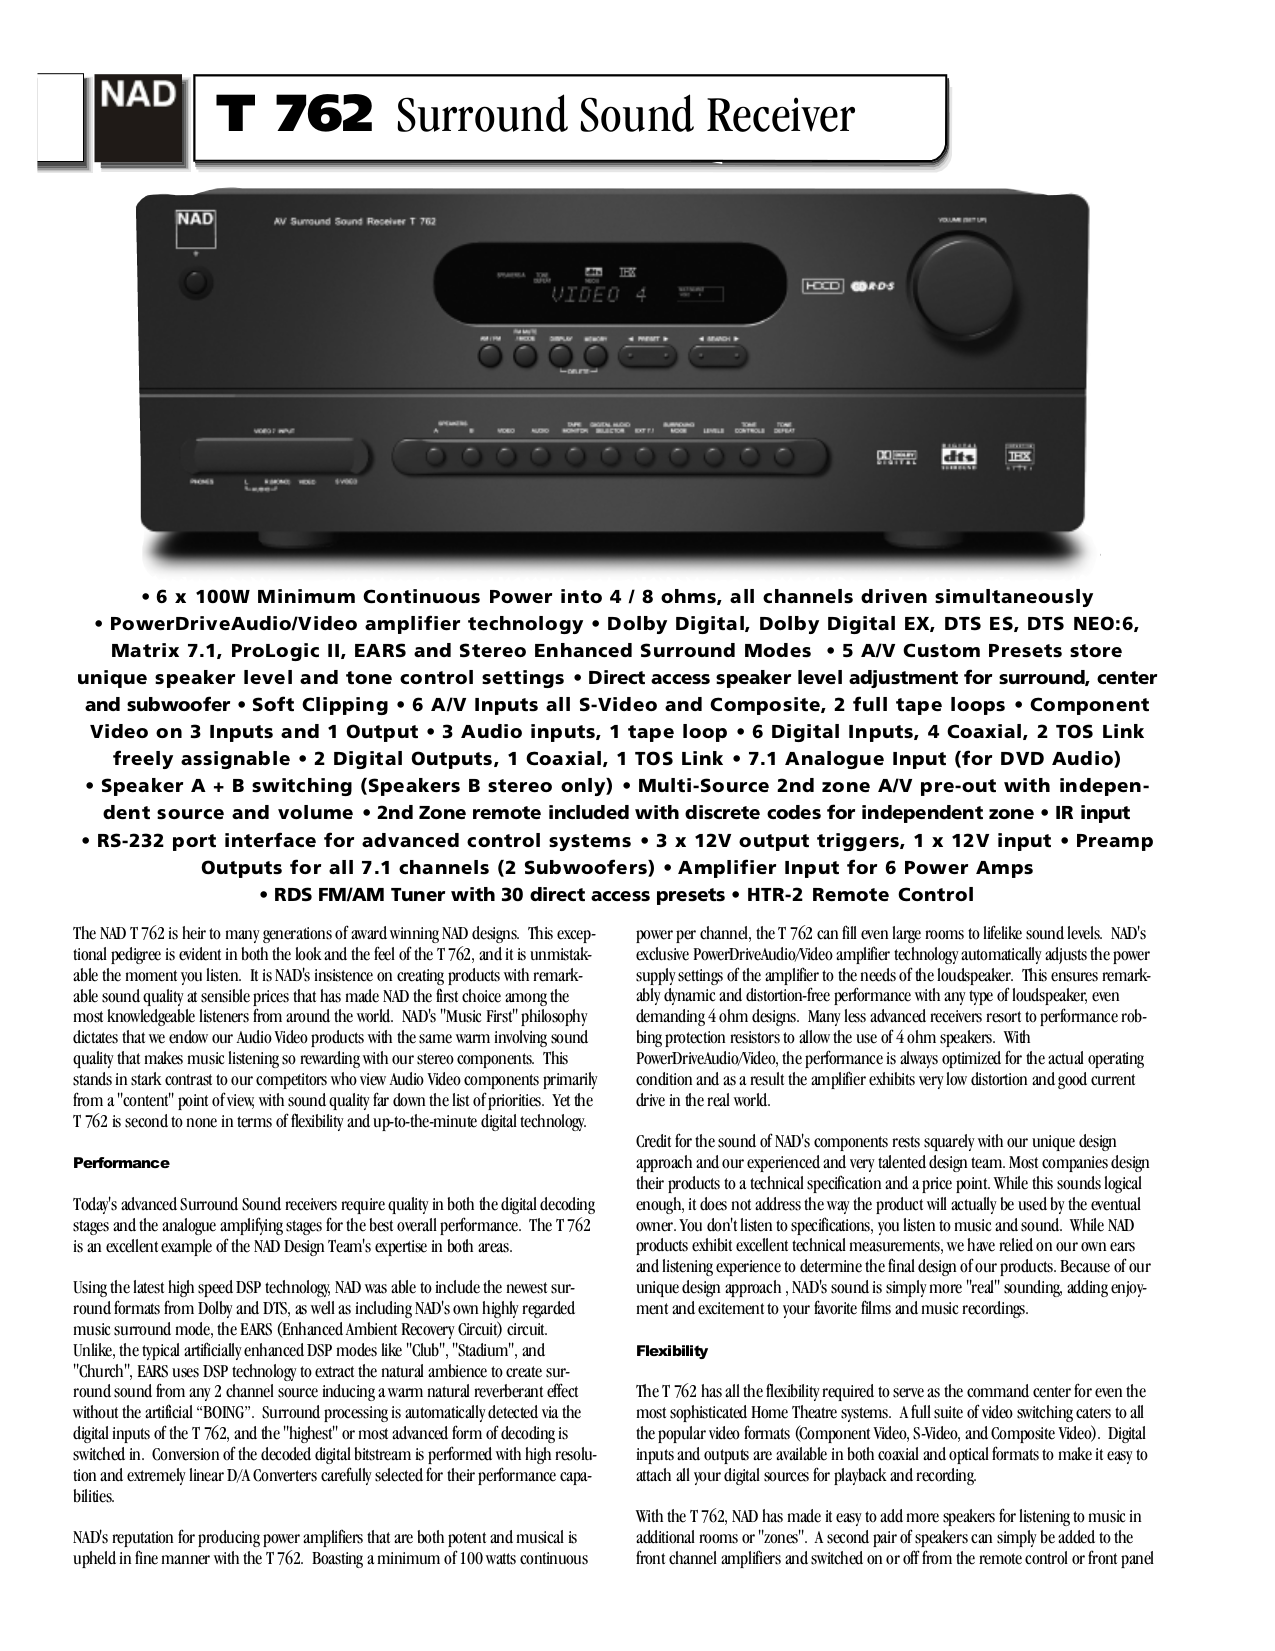 pdf for NAD Receiver T762 manual